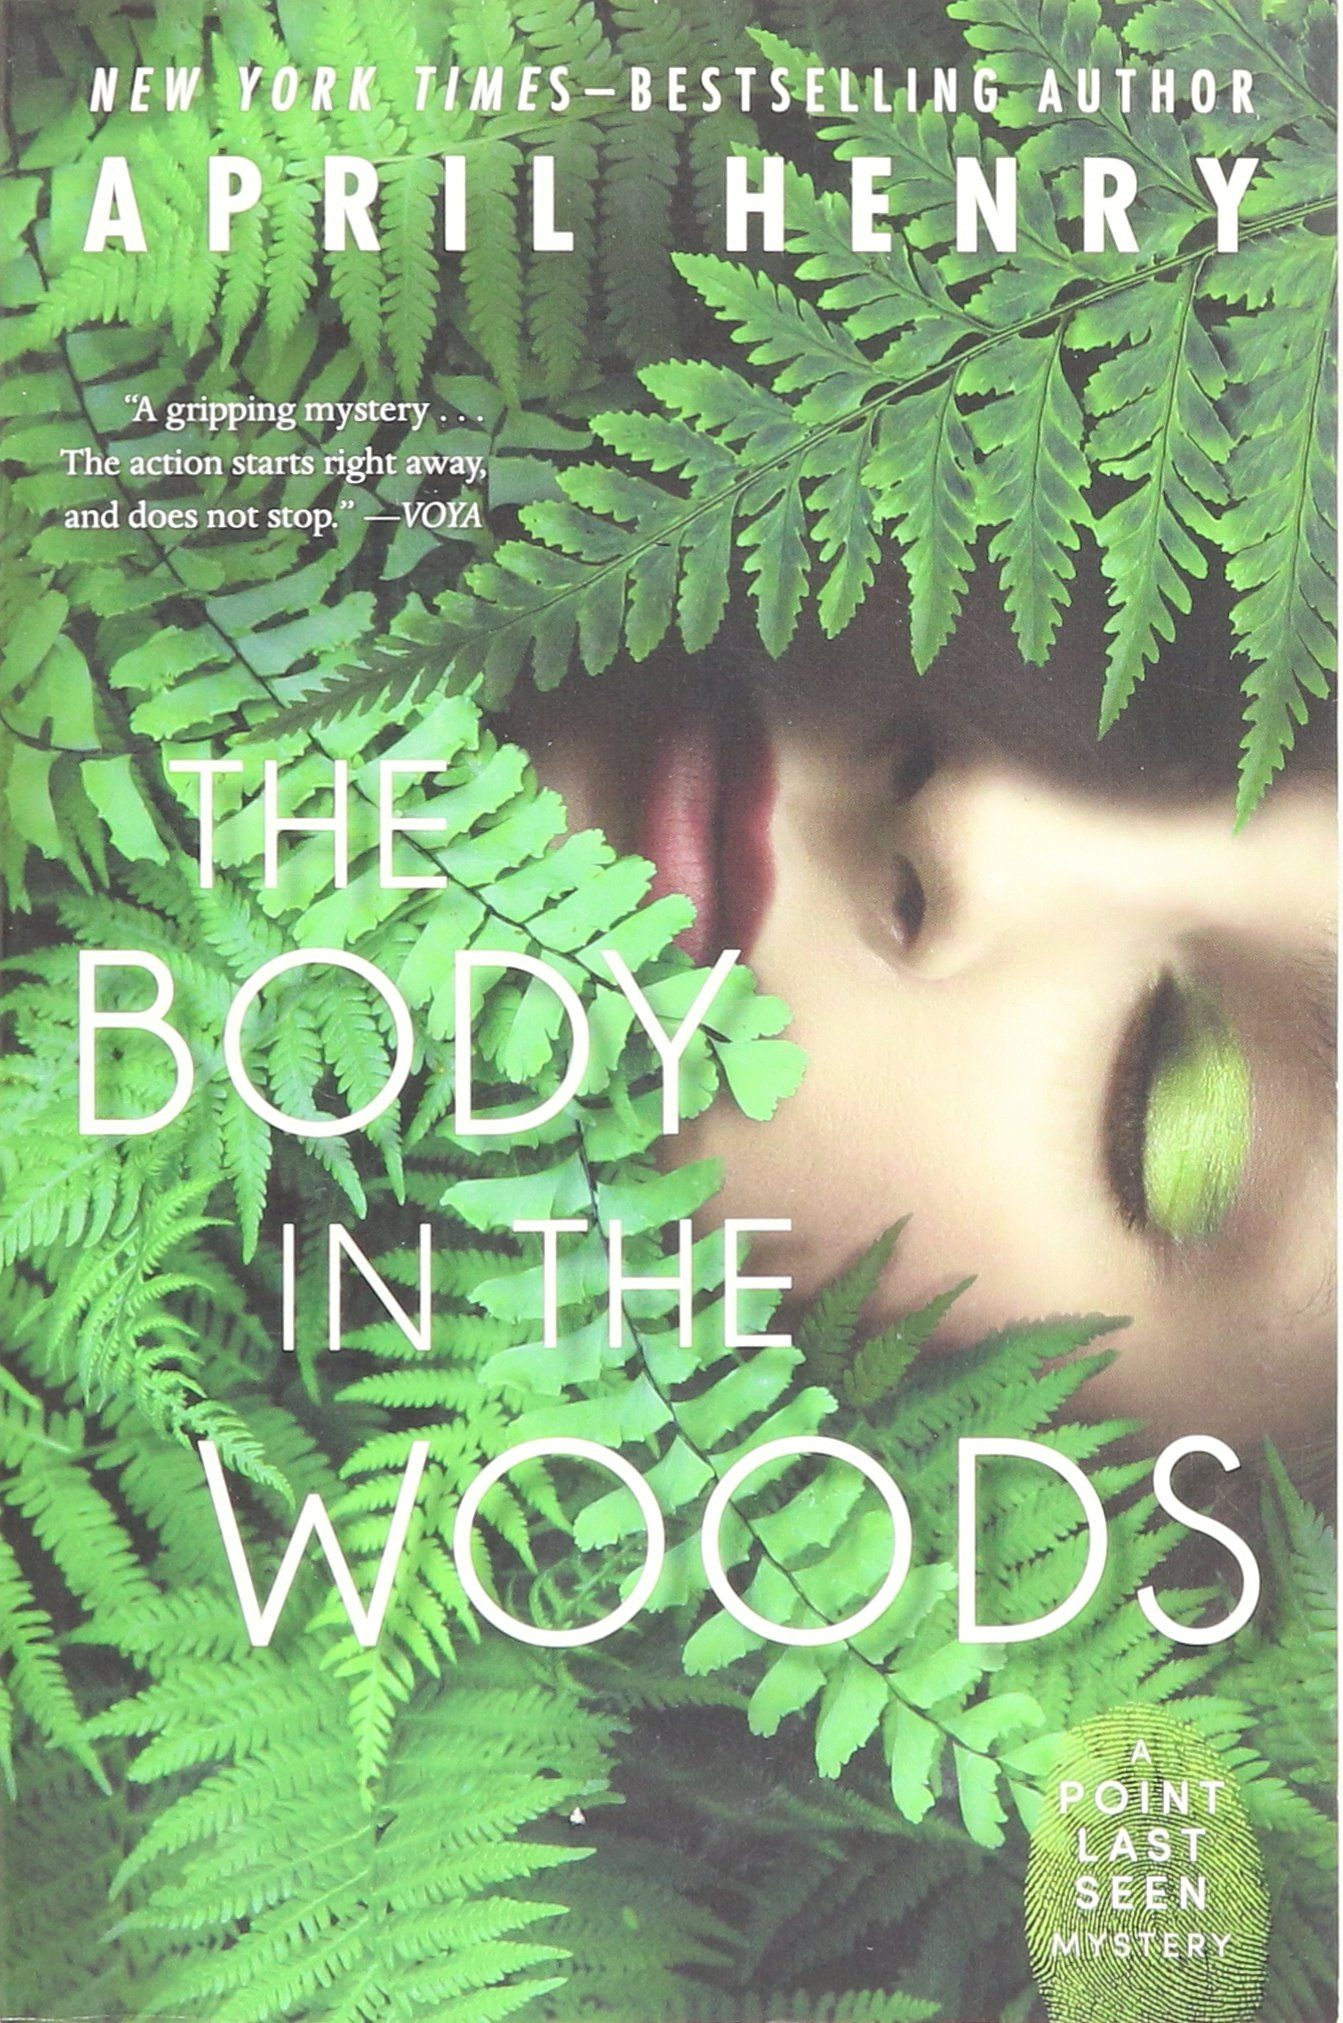 Download The Body in the Woods: A Point Last Seen Mystery ebook